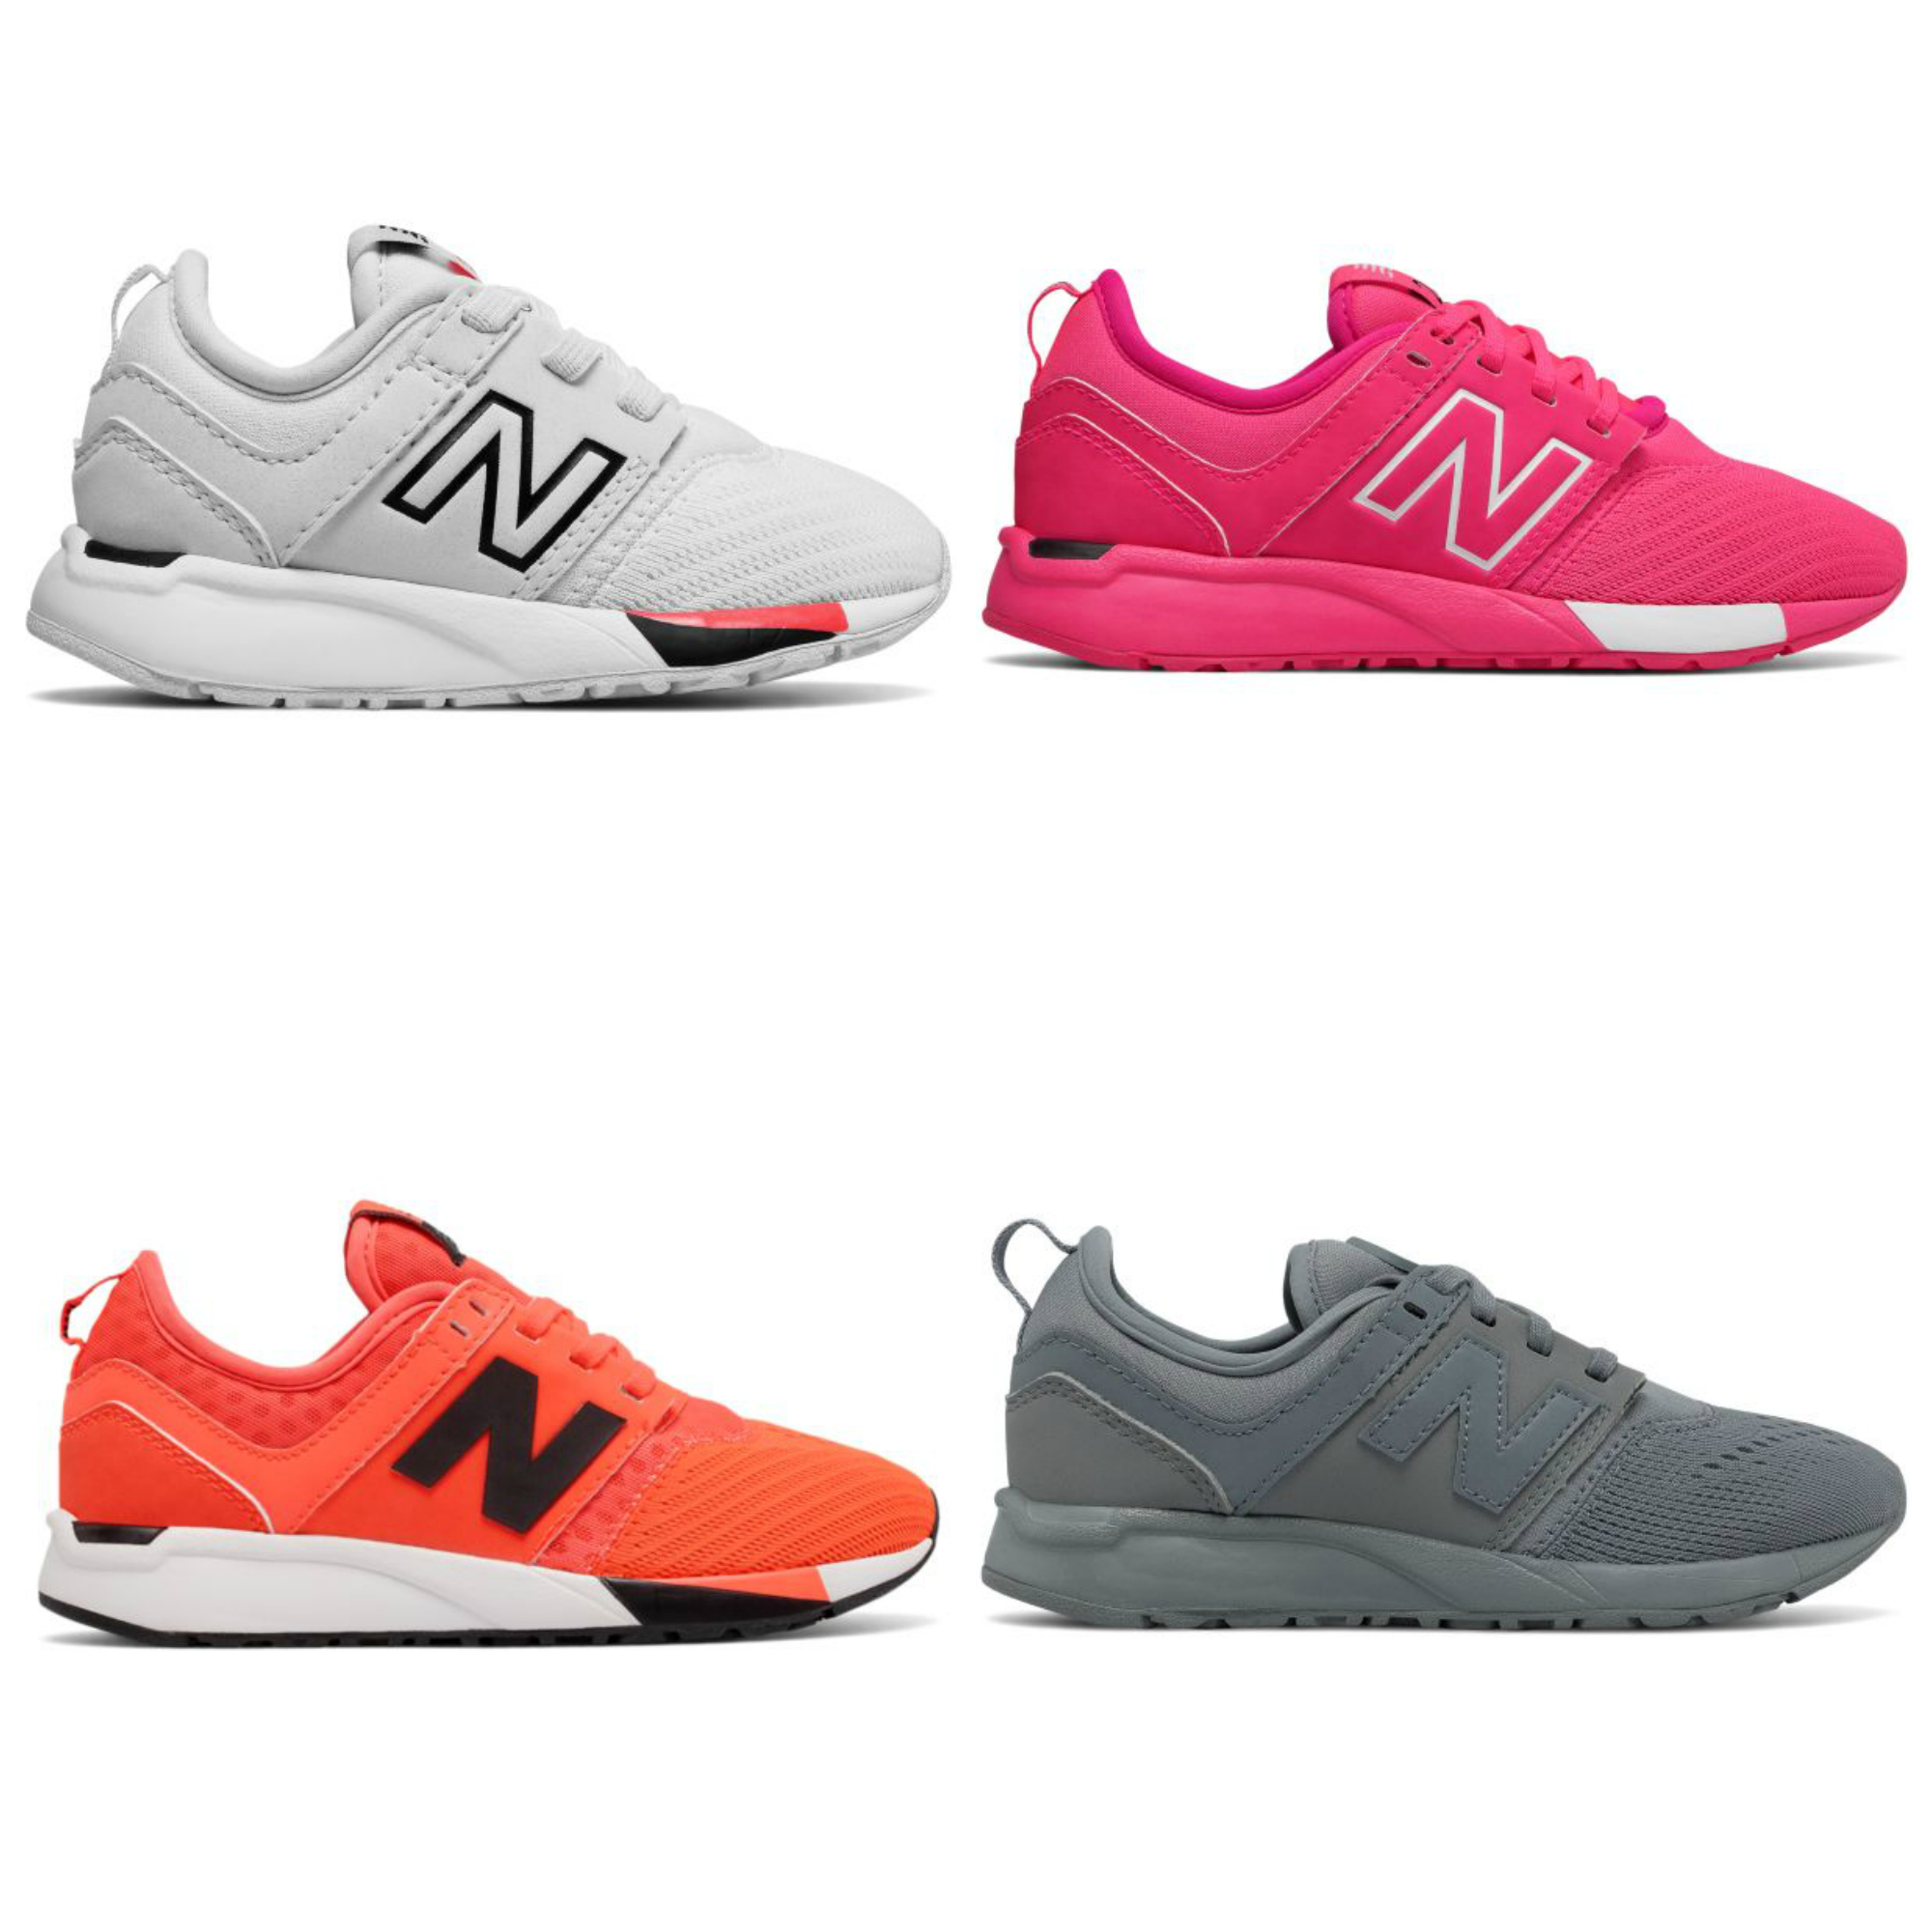 reputable site 503be 4fc89 Do the kids need a new pair of shoes  Joe s New Balance Outlet is offering  247 style shoes for 50% off. Use the code 247KIDS to get the deal.